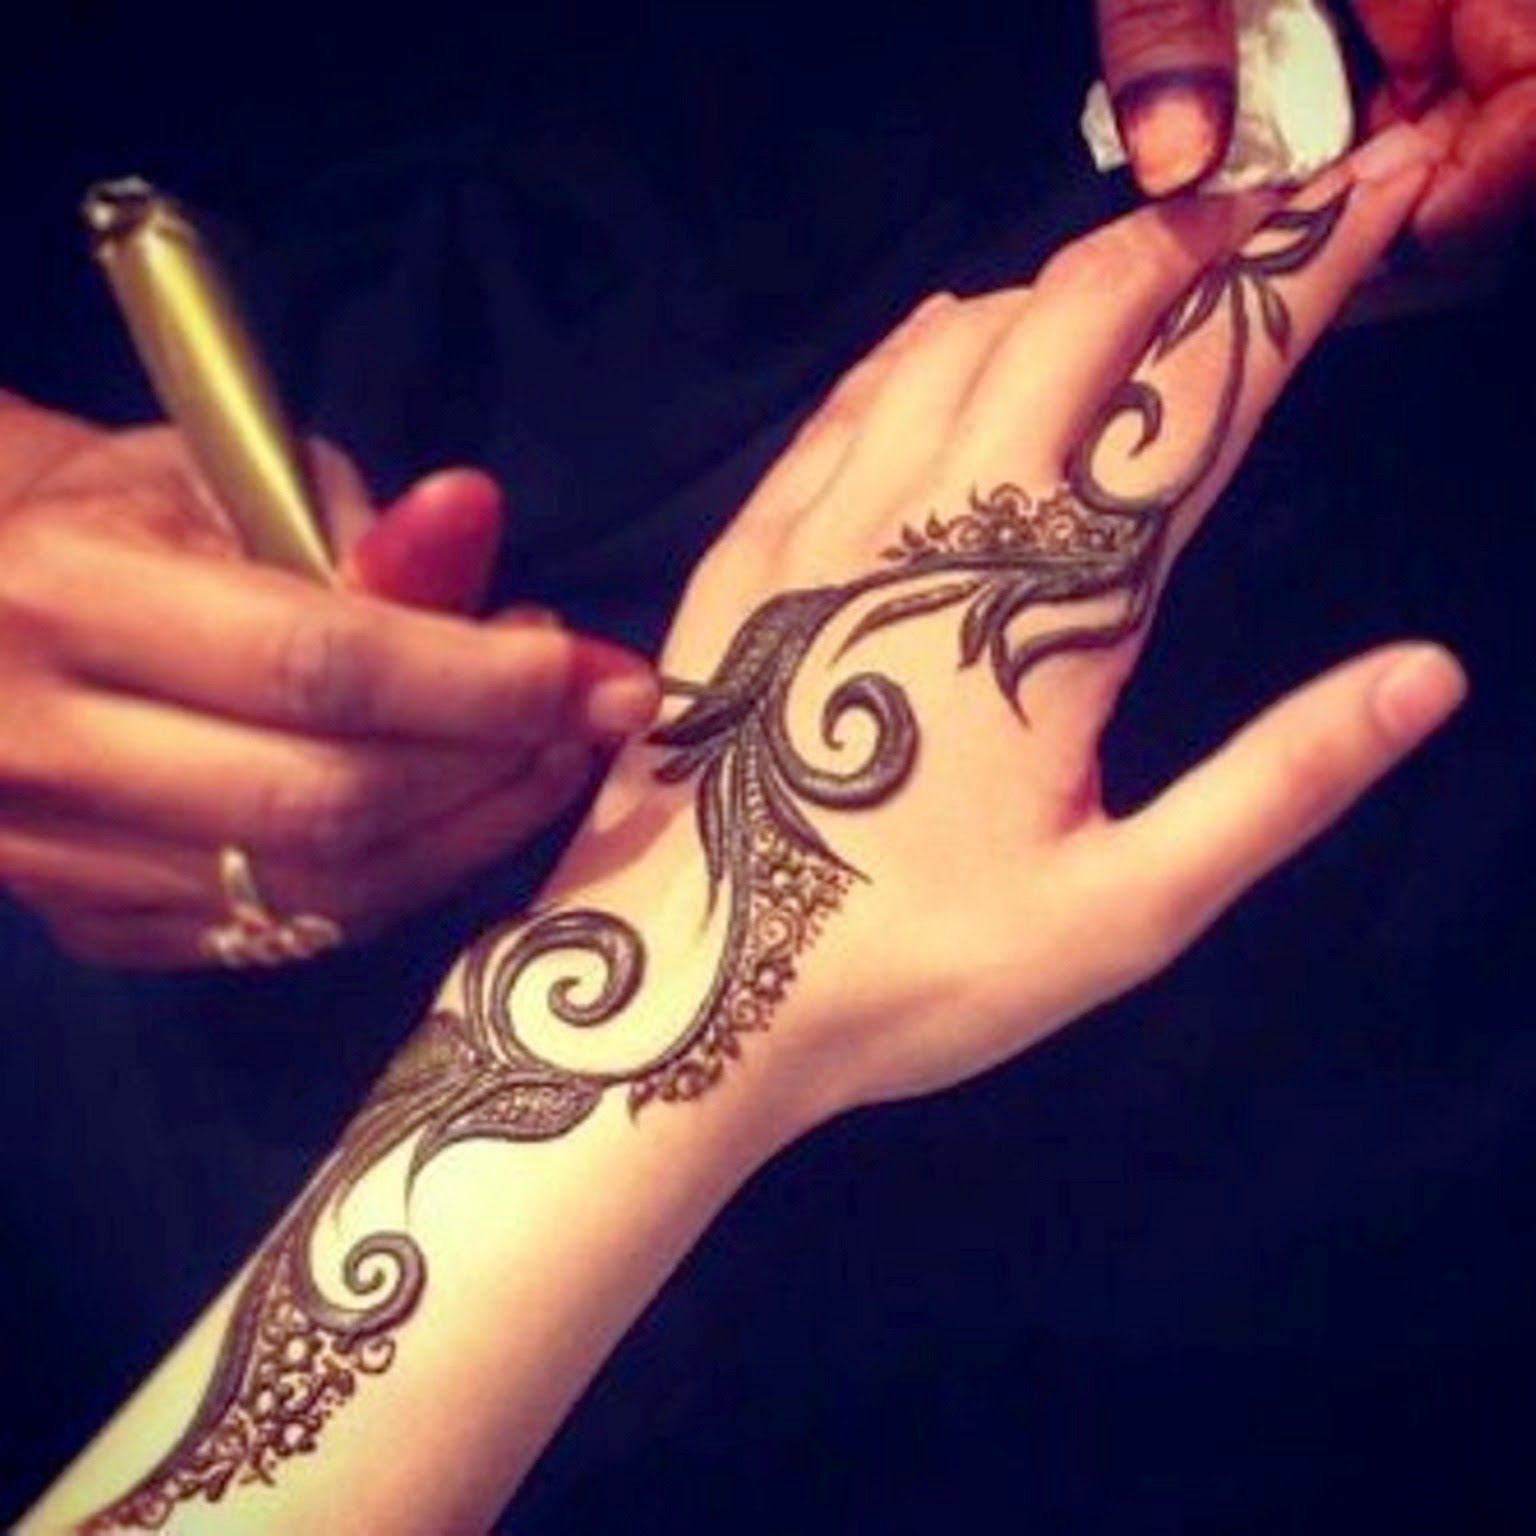 Arabic Mehndi Designs 2013 Facebook - Collection of thousands of free mehandi design from all over the world